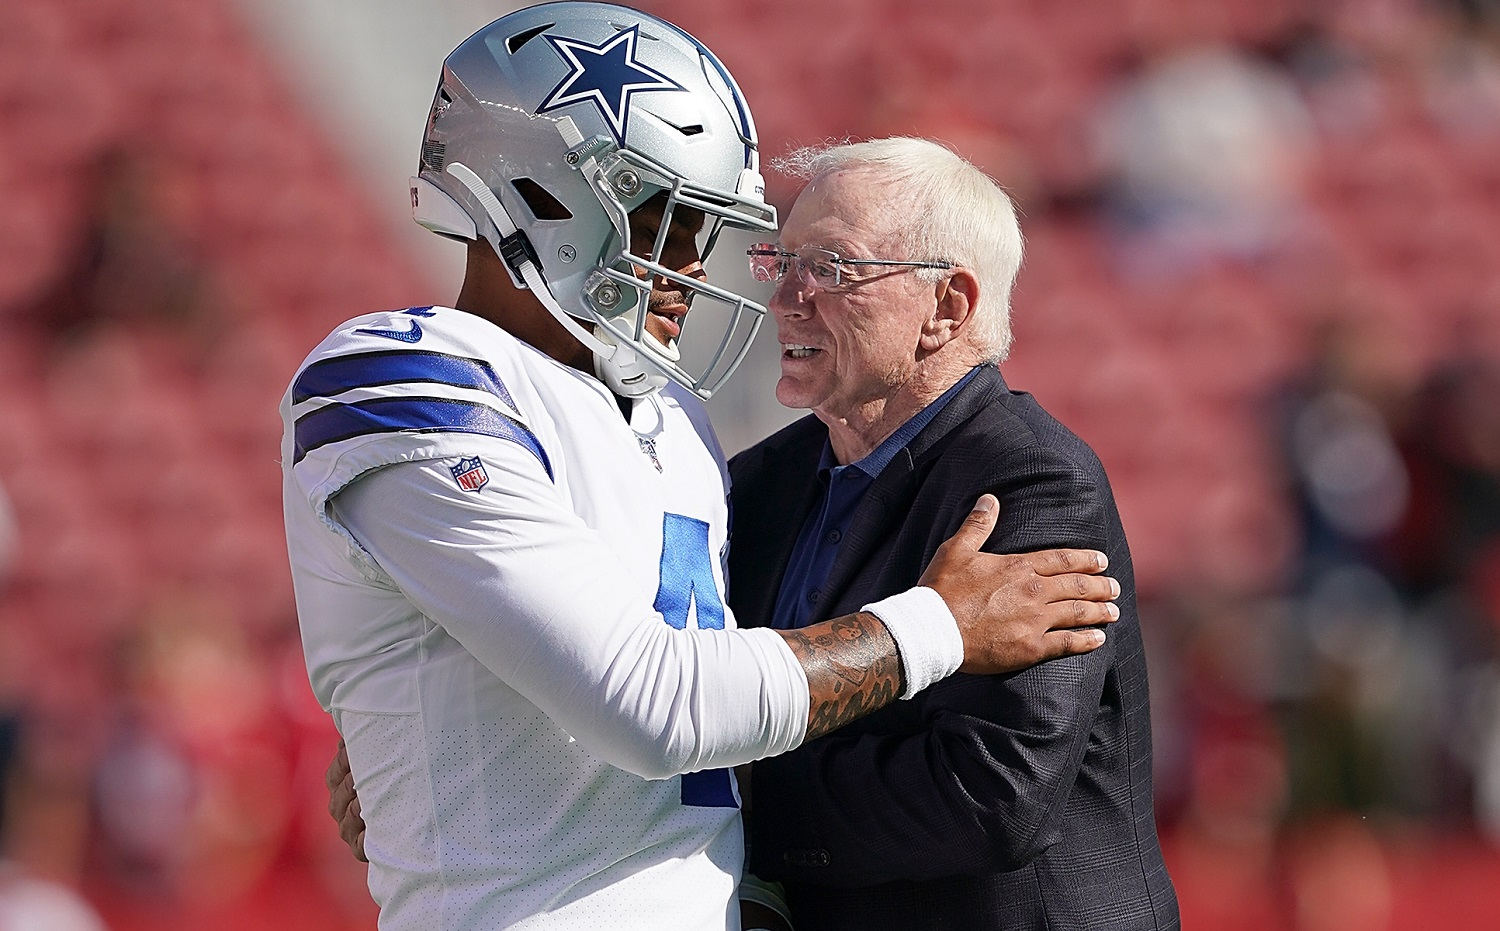 Dak Prescott and Jerry Jones have contract issues to work out, but the Cowboys also ave to worry about a No. 2 quarterback.